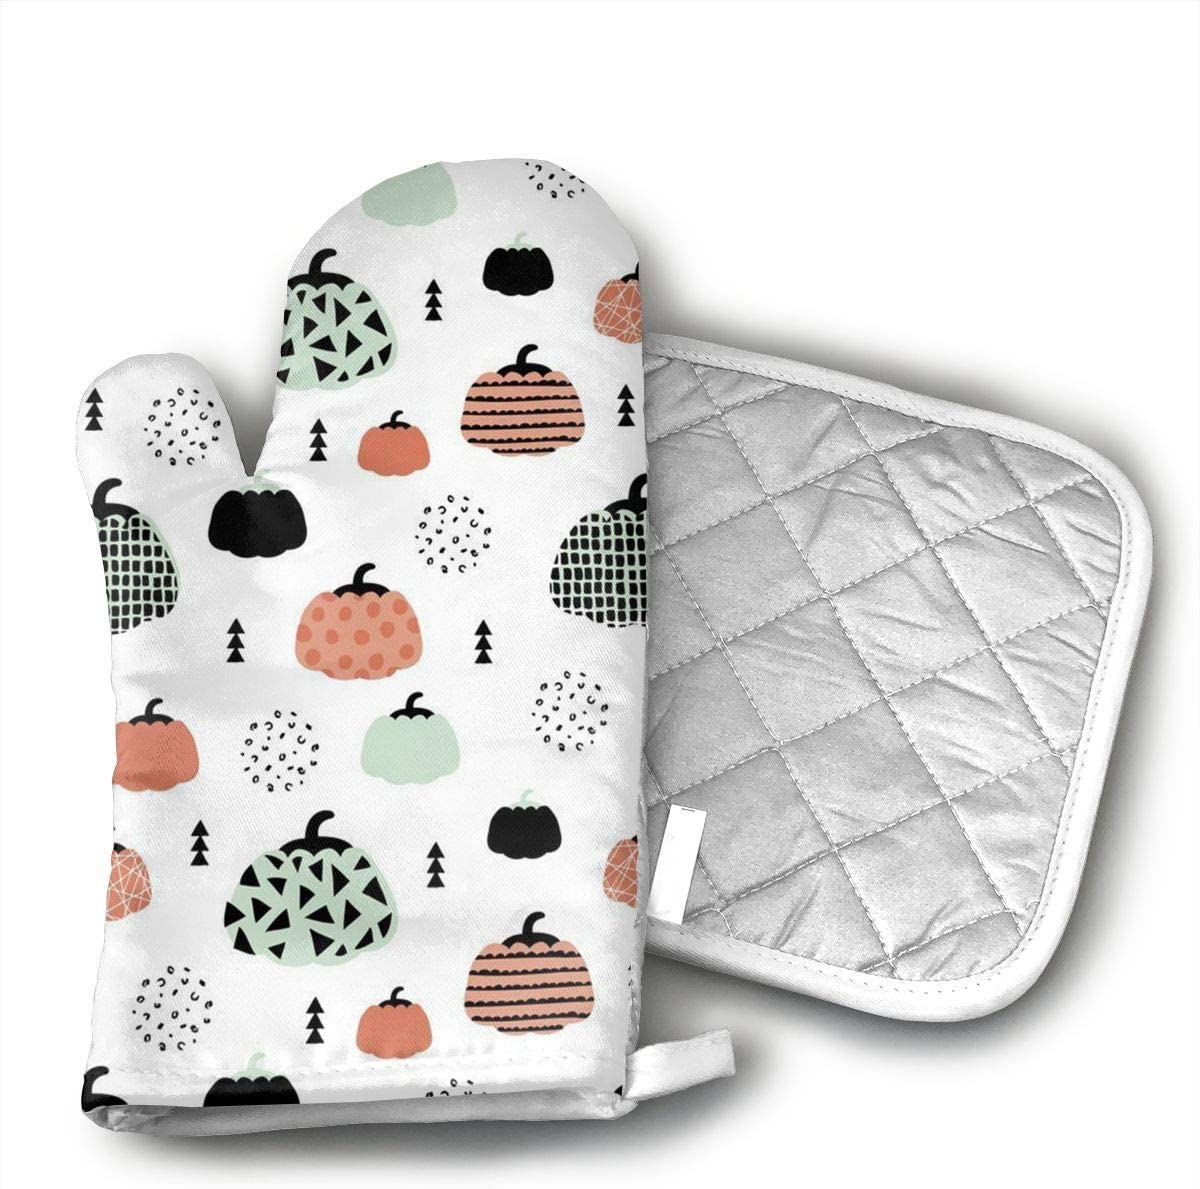 Fall Fruit Geometric Pumpkin Halloween Coral Mint Orange Kitchen Oven Mitts Oven Gloves with Cotton Lining for BBQ Cooking Set Baking Grilling Barbecue Microwave Machine